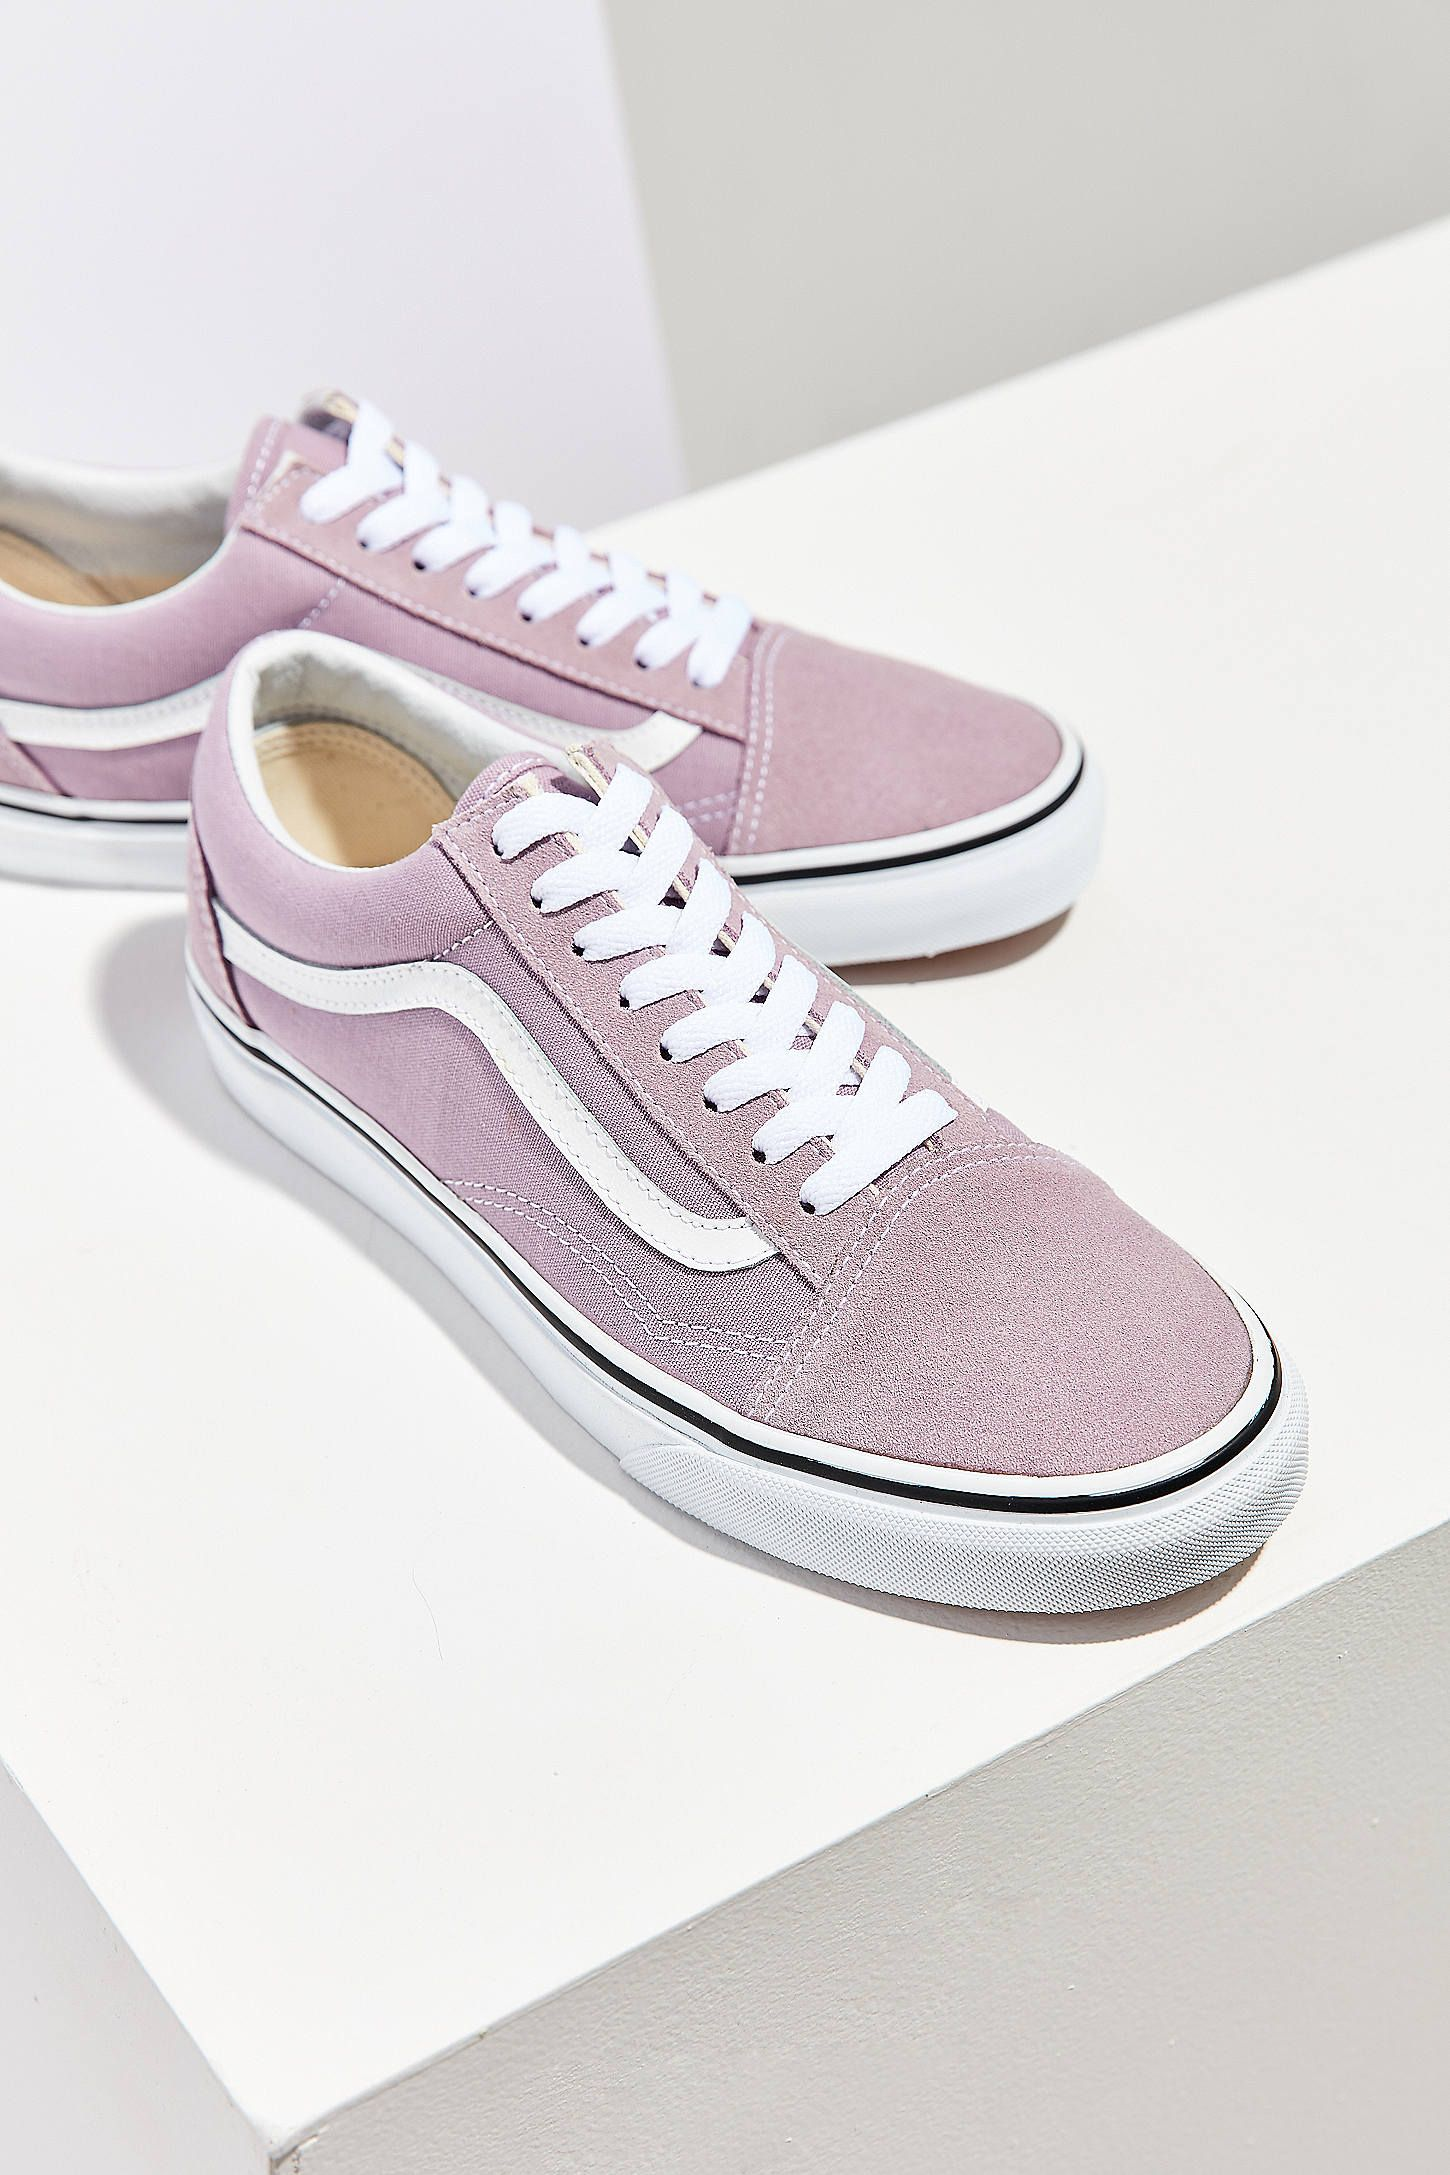 new style 667a6 cc96b Slide View  2  Vans Lilac Old Skool Sneaker